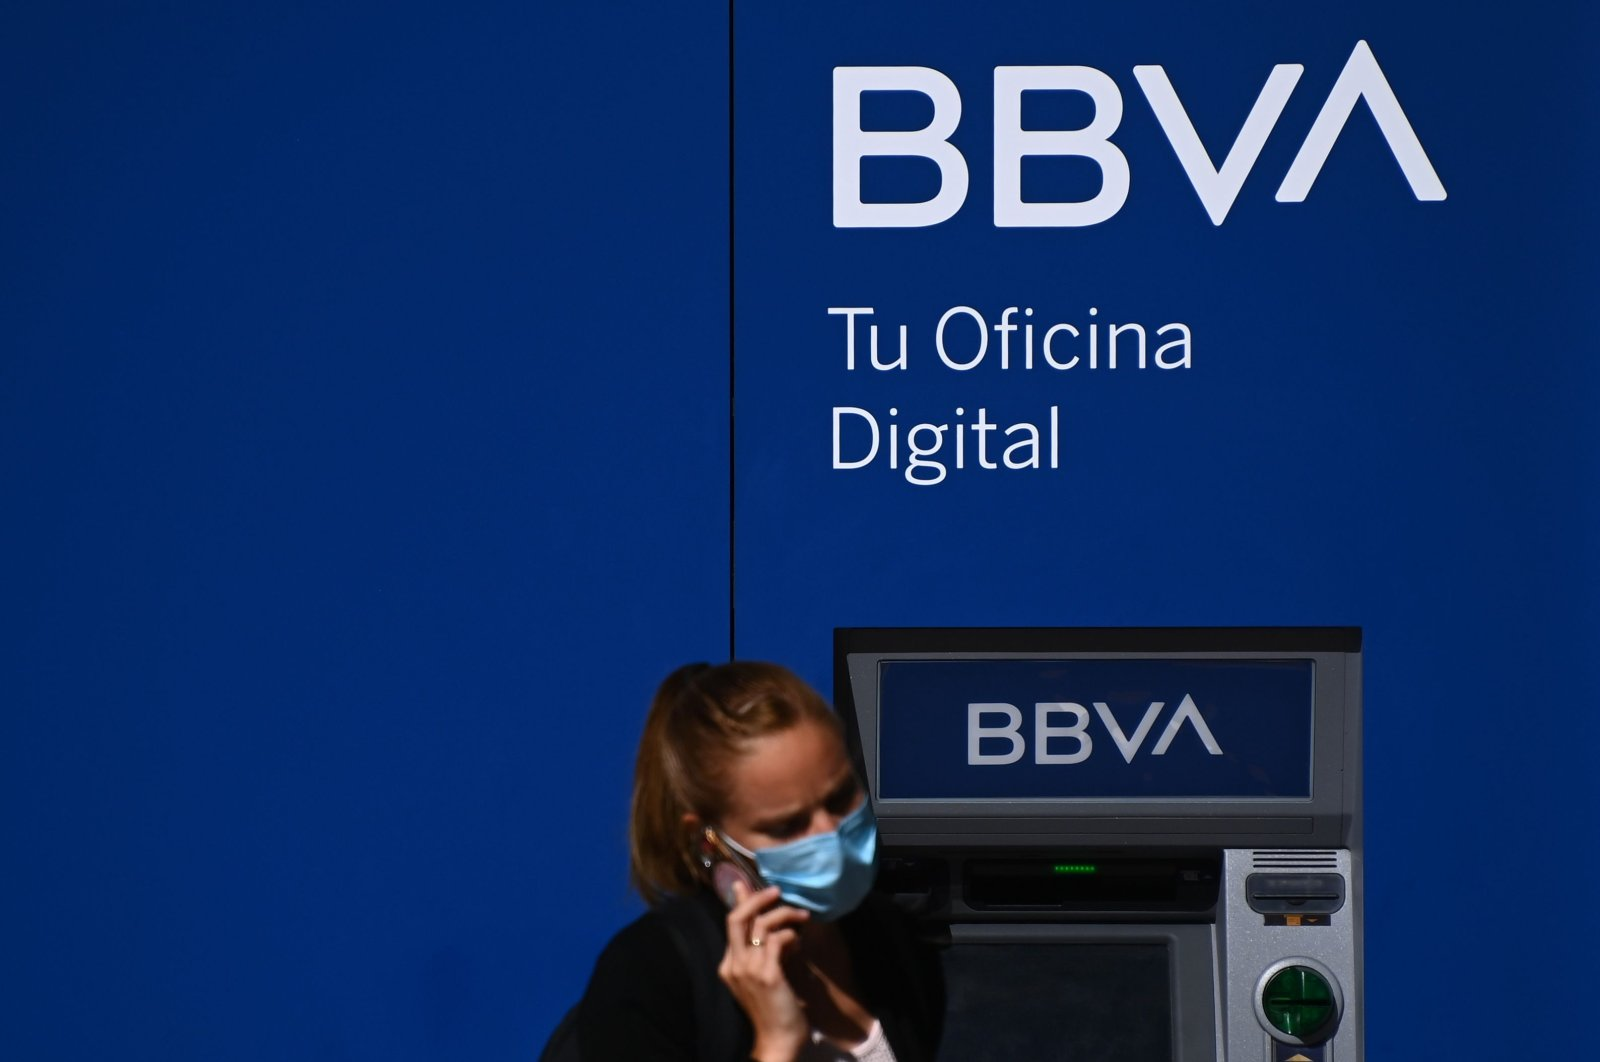 A woman uses a smartphone in front of an ATM of the BBVA in Madrid, Spain, Sept. 4, 2020. (AFP Photo)